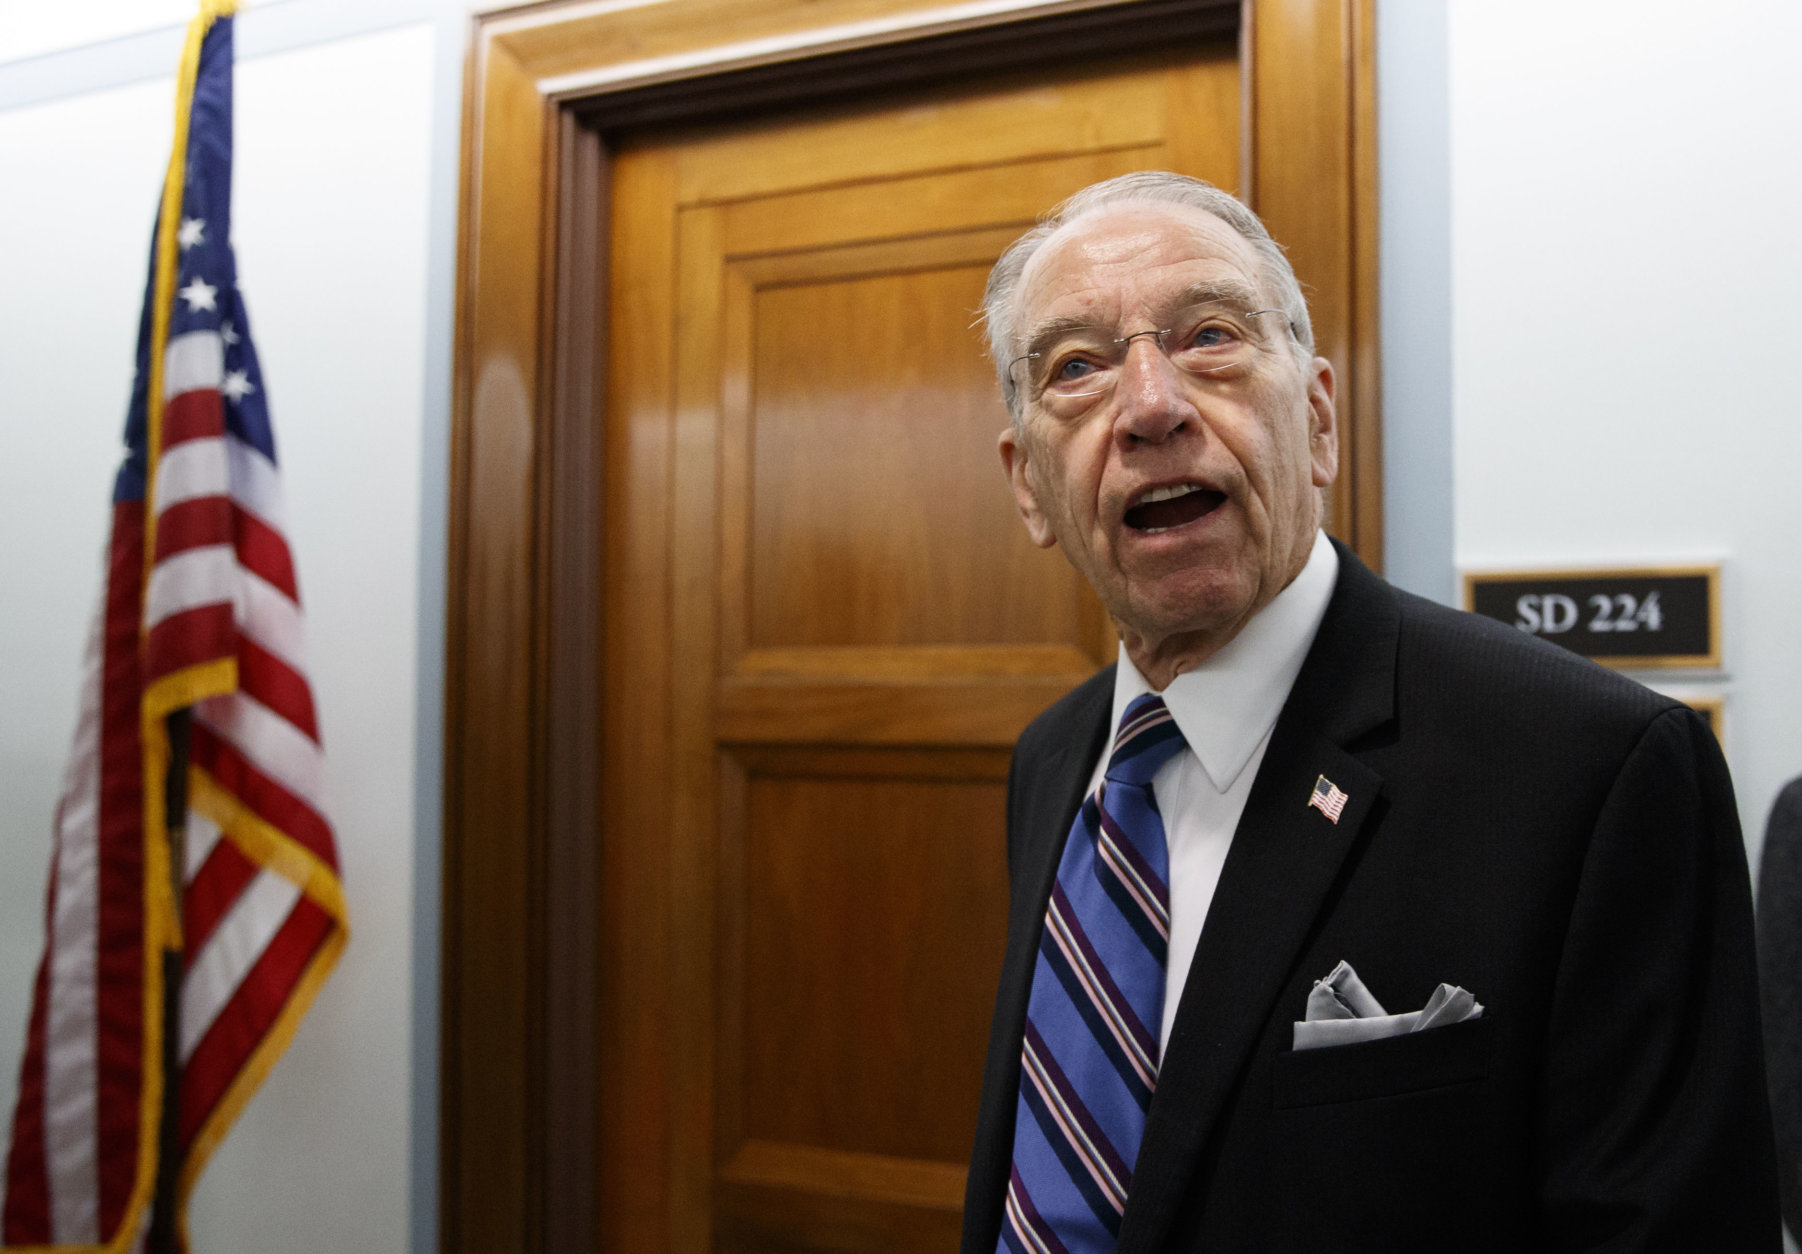 Senate Judiciary Committee chairman Chuck Grassley, R-Iowa, pauses to speak to reporters as he arrives for the Senate Judiciary hearing on Capitol Hill in Washington, Thursday, Sept. 27, 2018, with Christine Blasey Ford and Supreme Court nominee Brett Kavanaugh. (AP Photo/Carolyn Kaster)